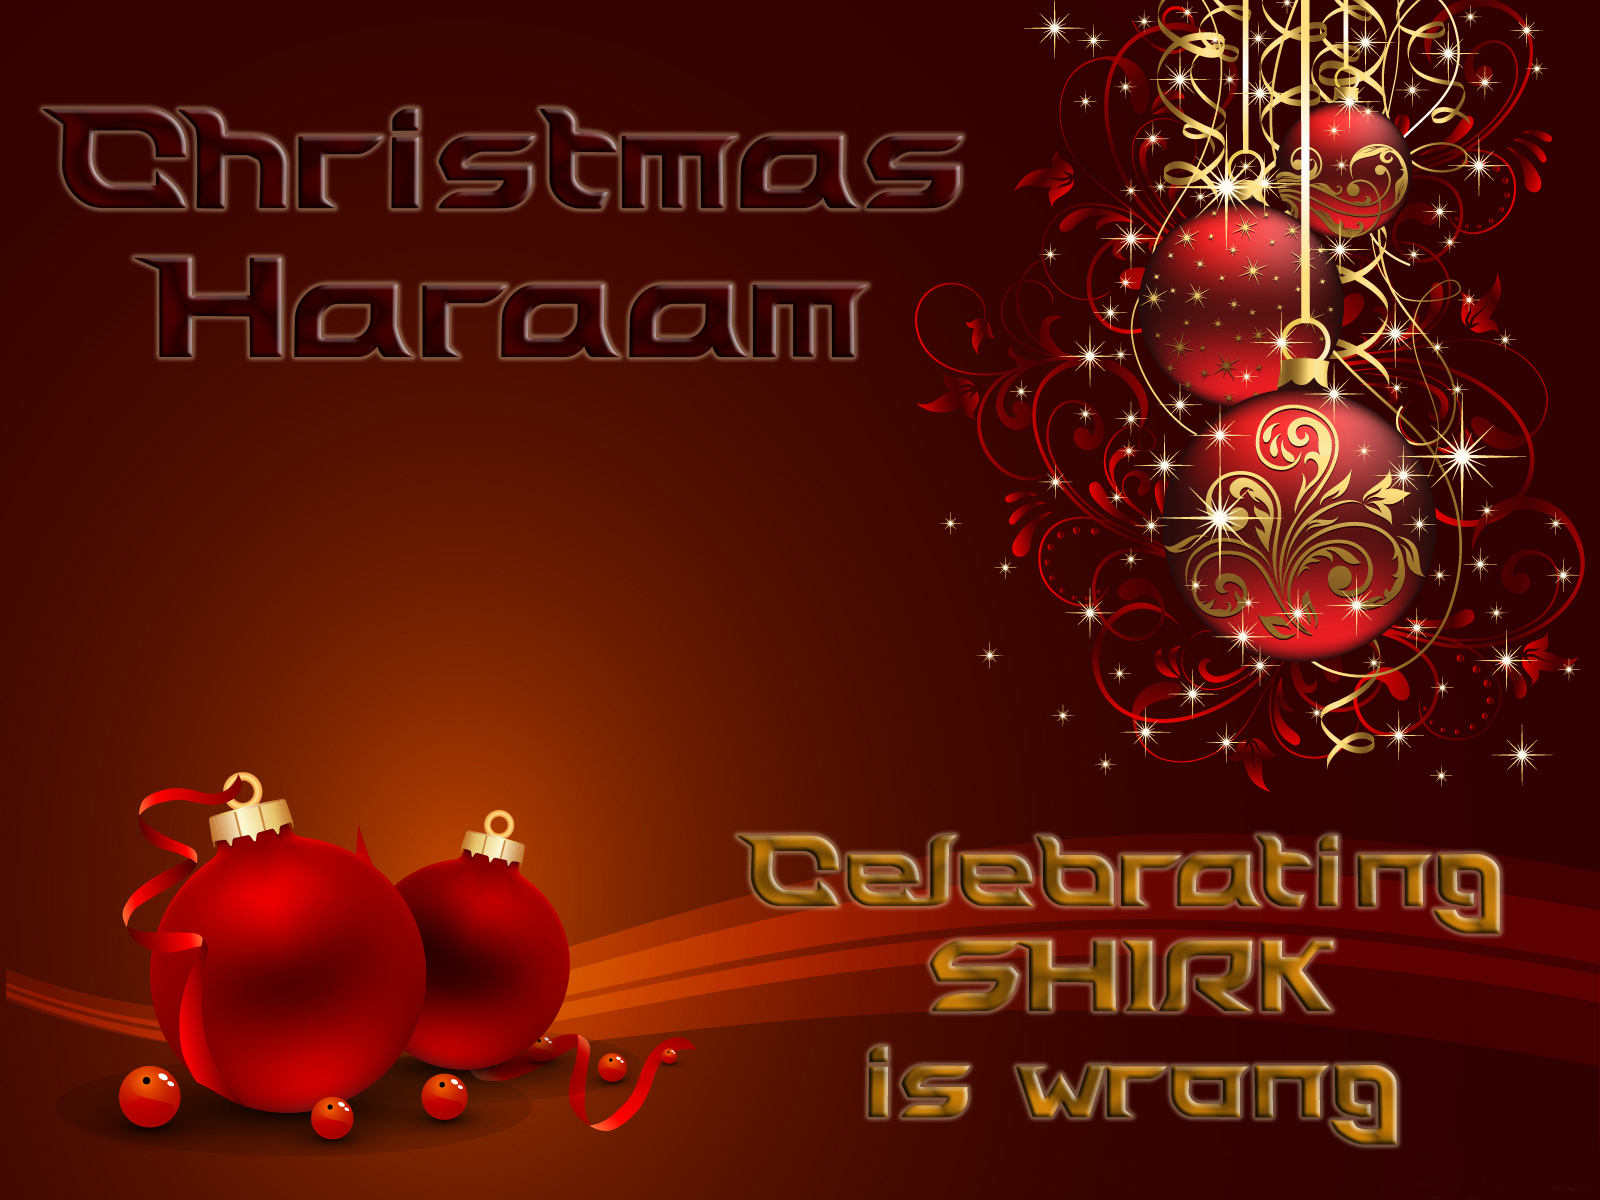 Christmas And Islam Muslims Stop Making Excuses Stand Up 4 Islam